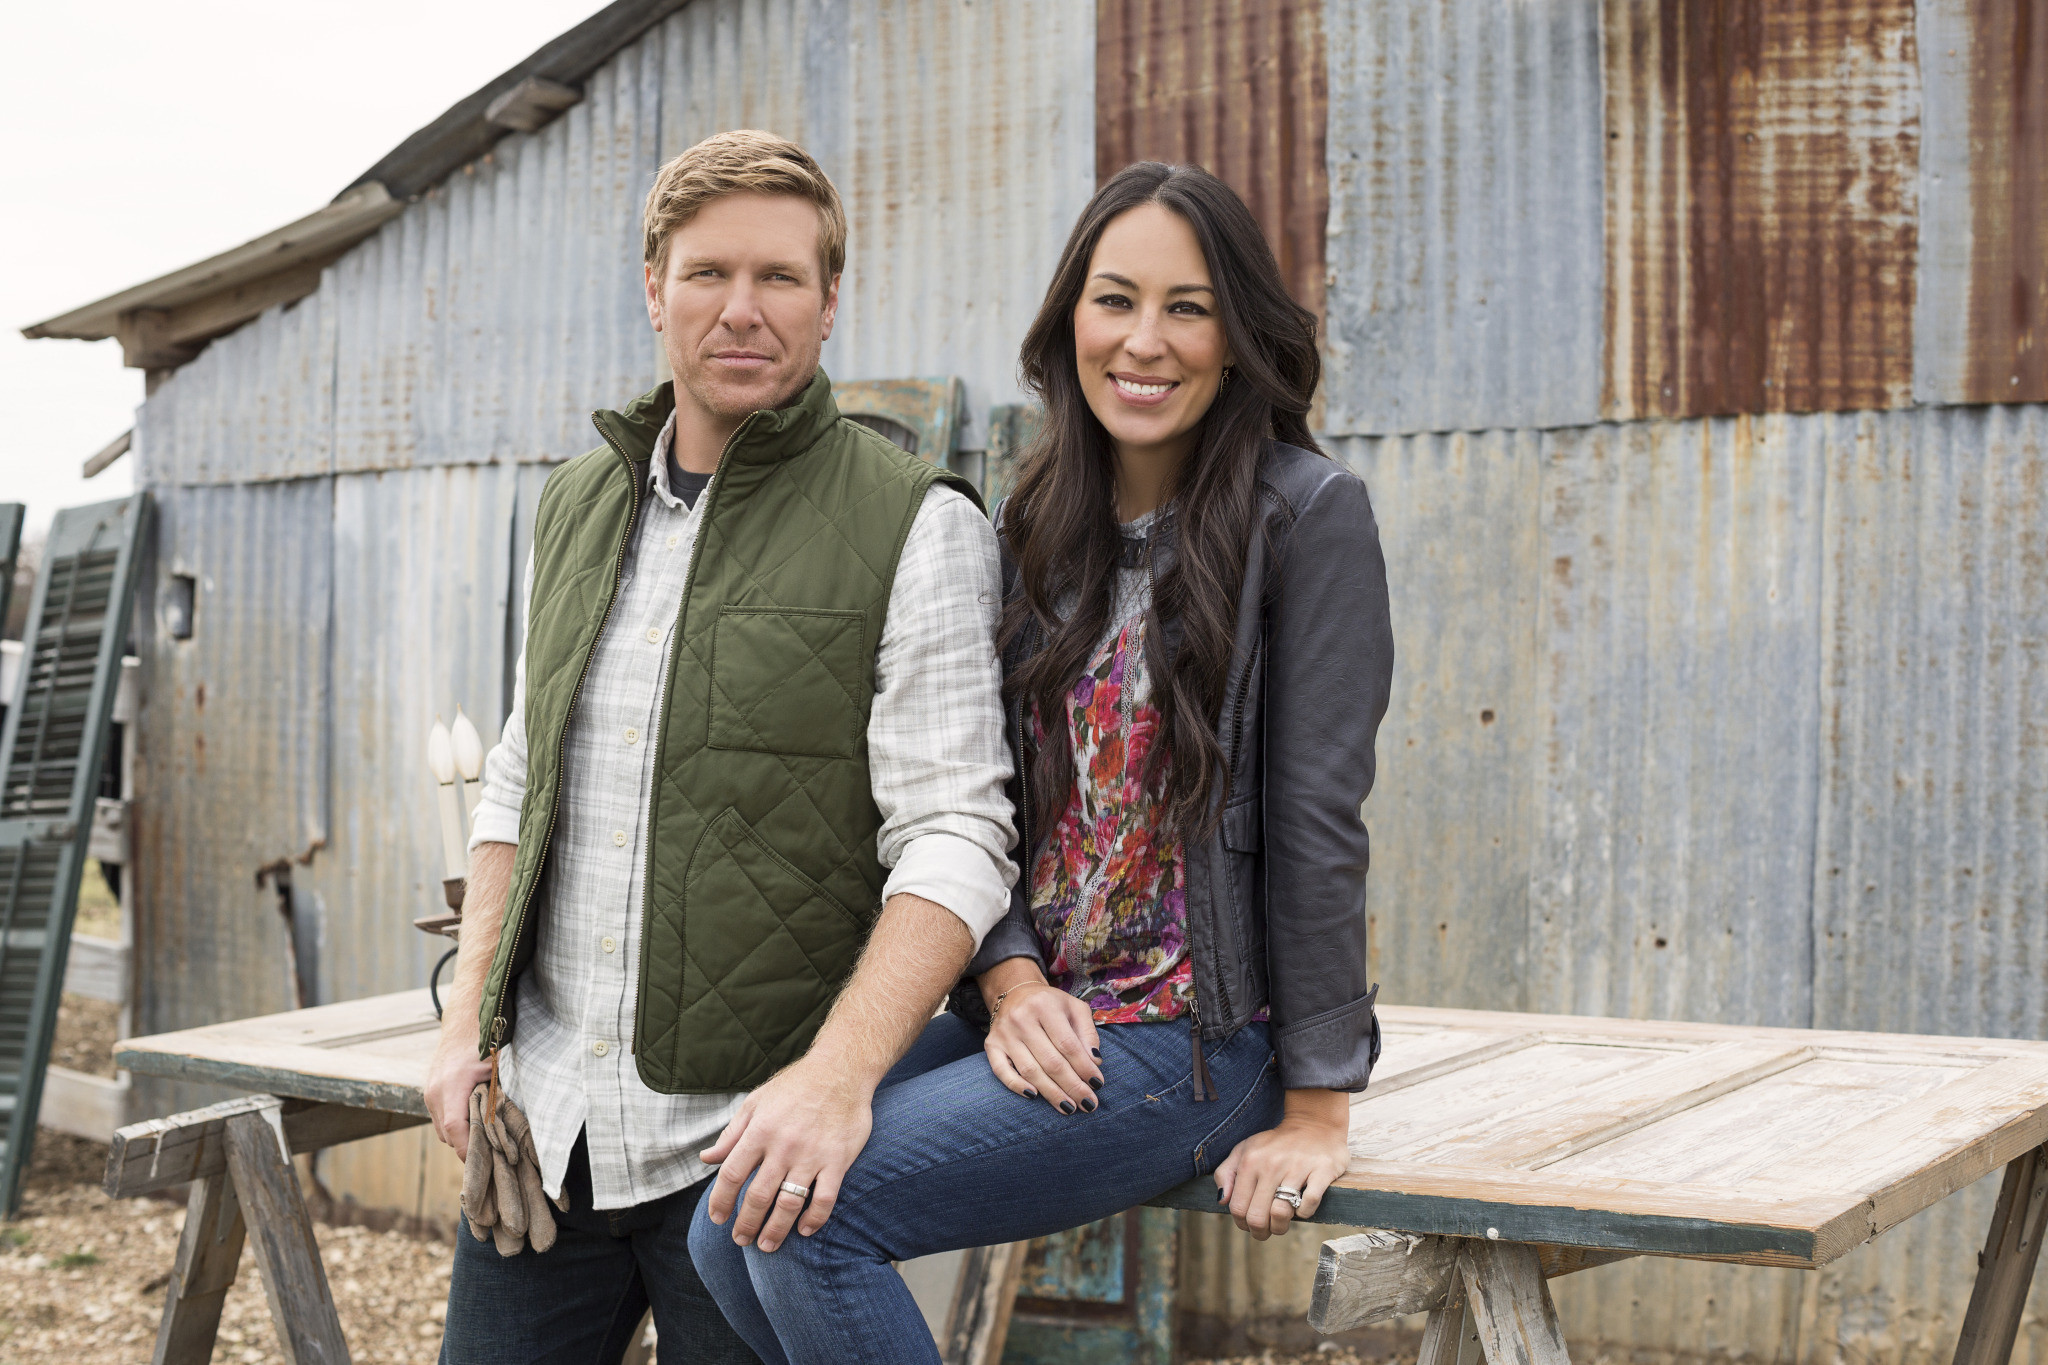 39 fixer upper 39 hosts propose useful home projects for 2015 la times. Black Bedroom Furniture Sets. Home Design Ideas